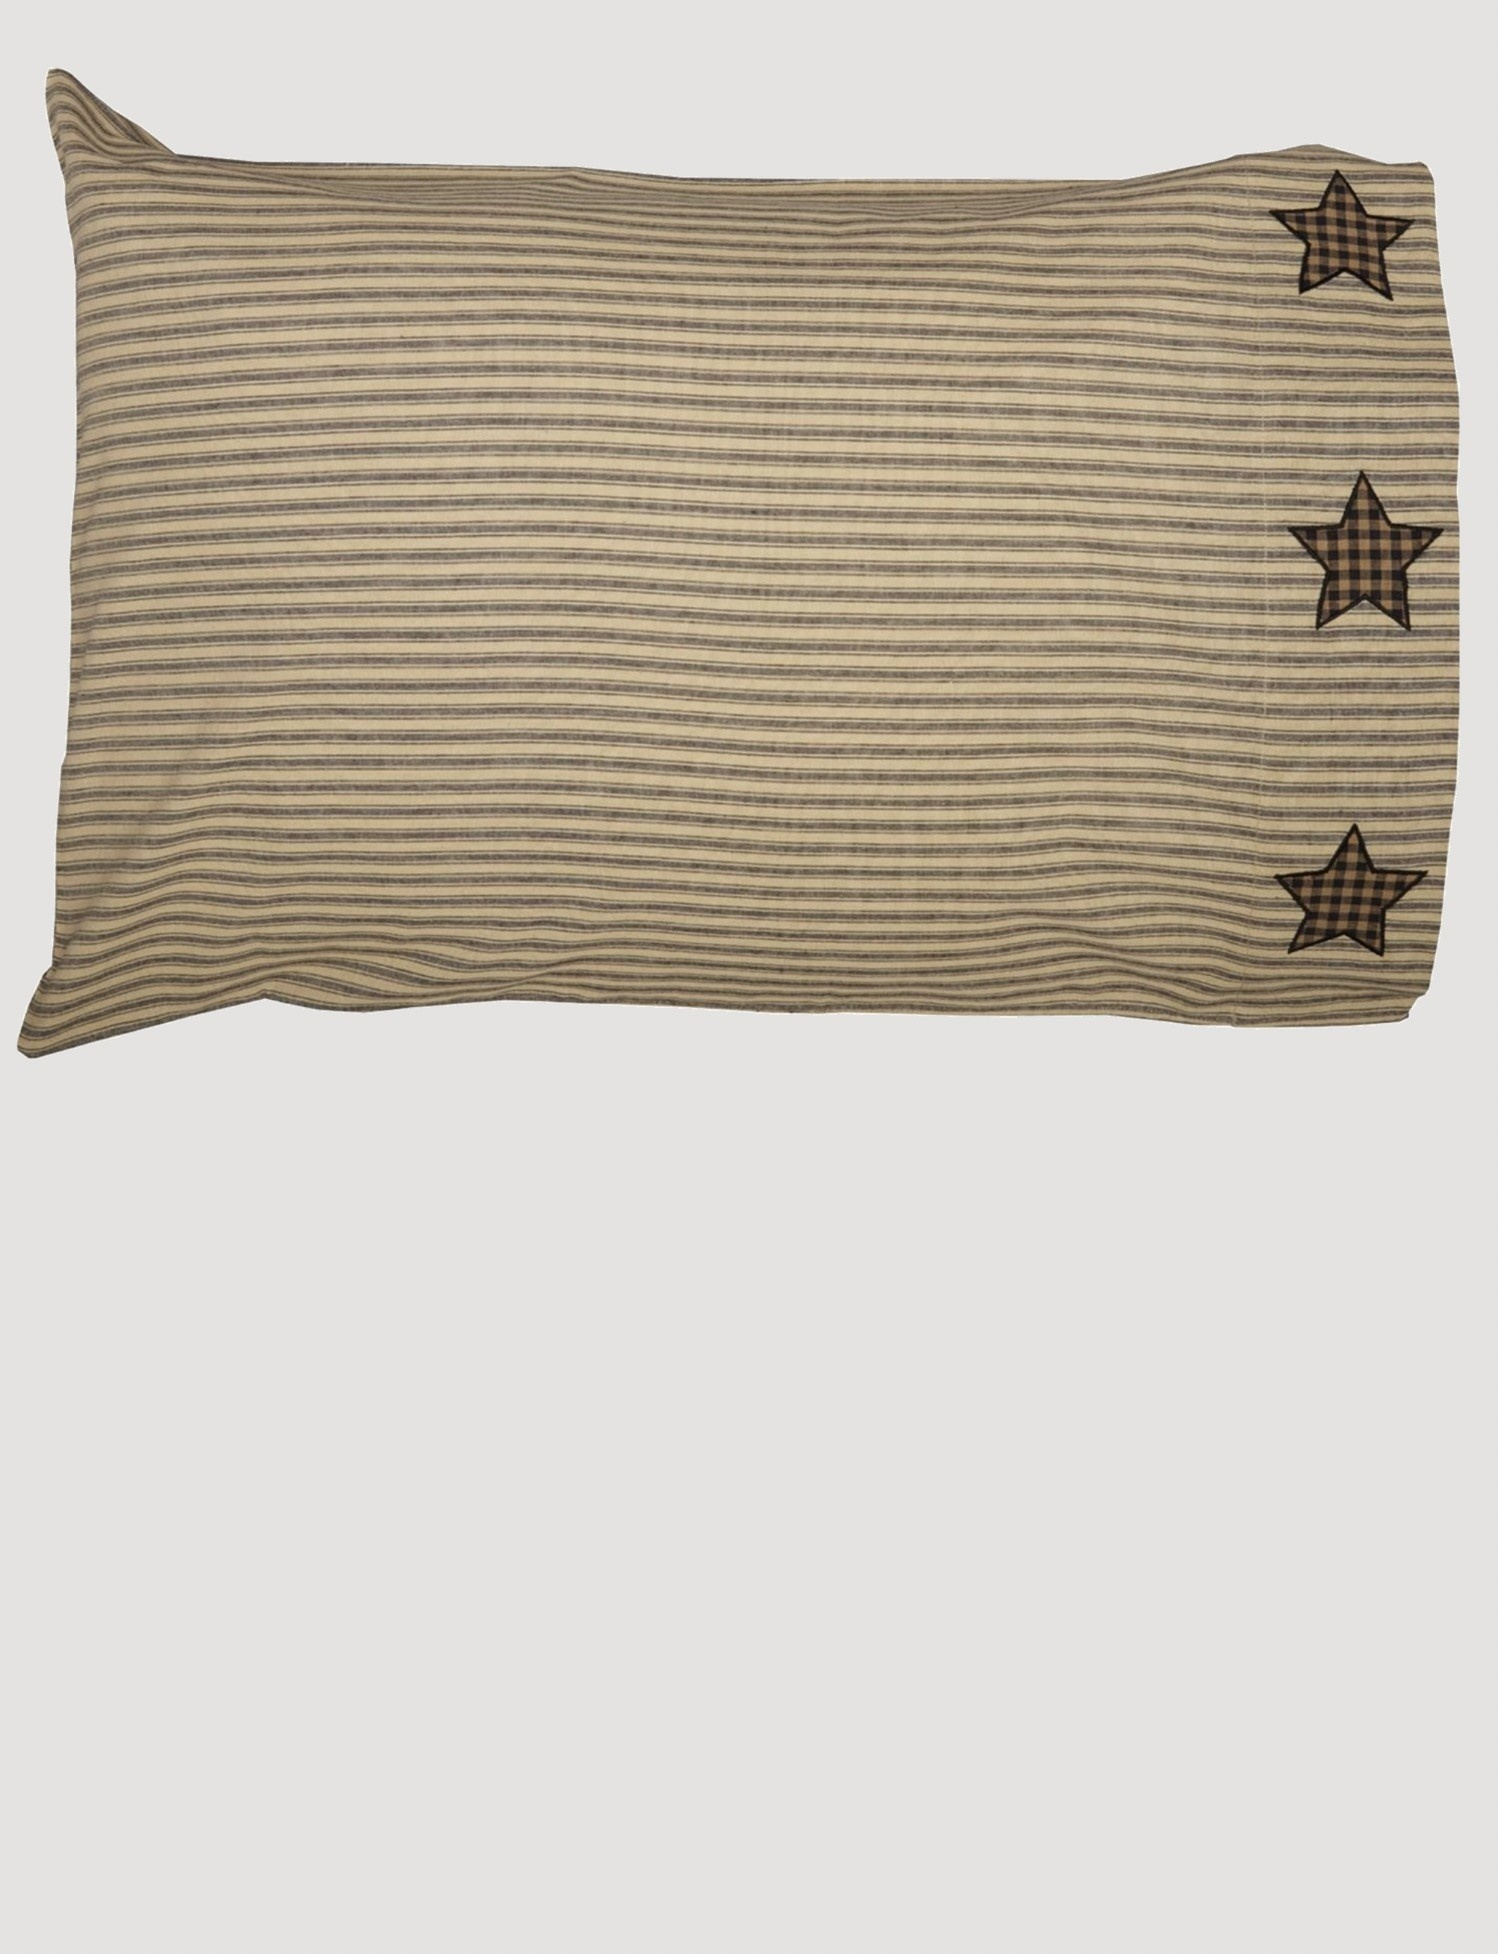 VHC Brands Farmhouse Star Pillow Case W/Applique Star Set of 2